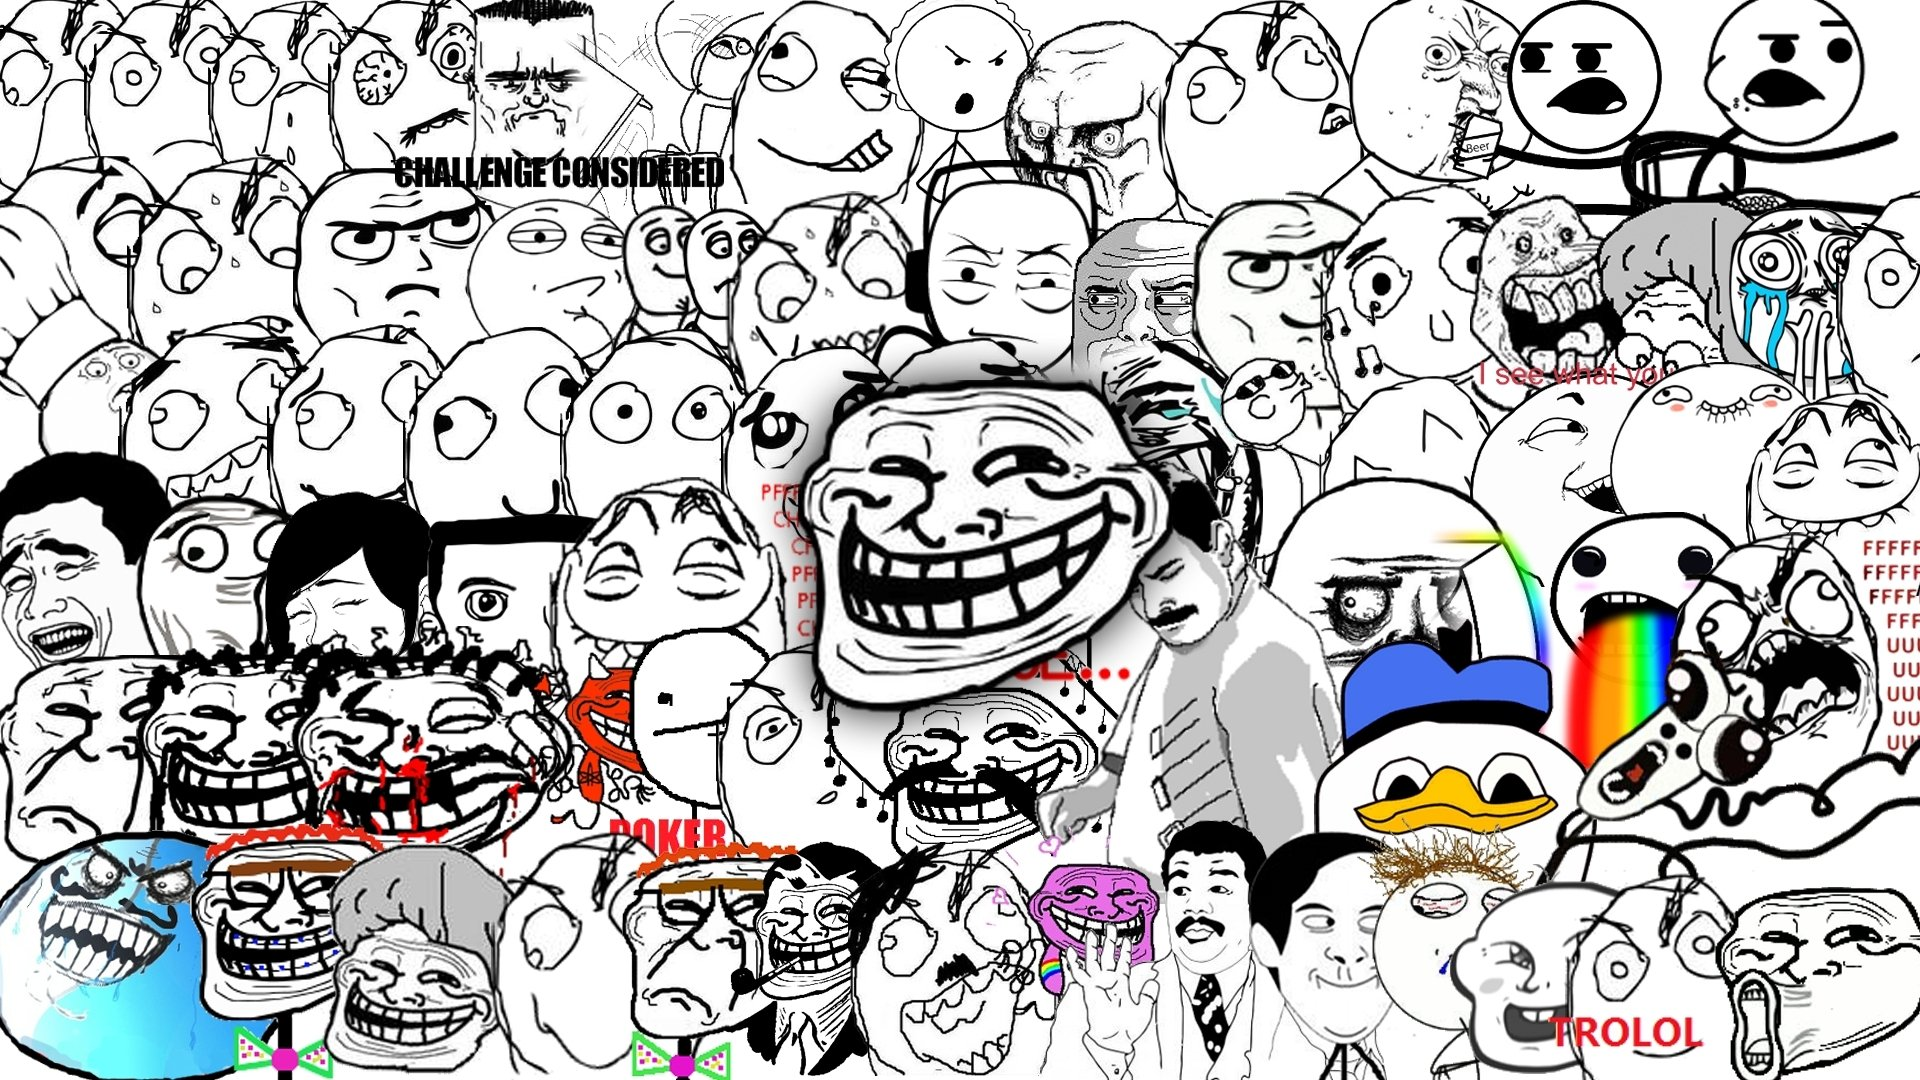 face trololo troll memes trolol 1920x1080 wallpaper Art HD Wallpaper 1920x1080